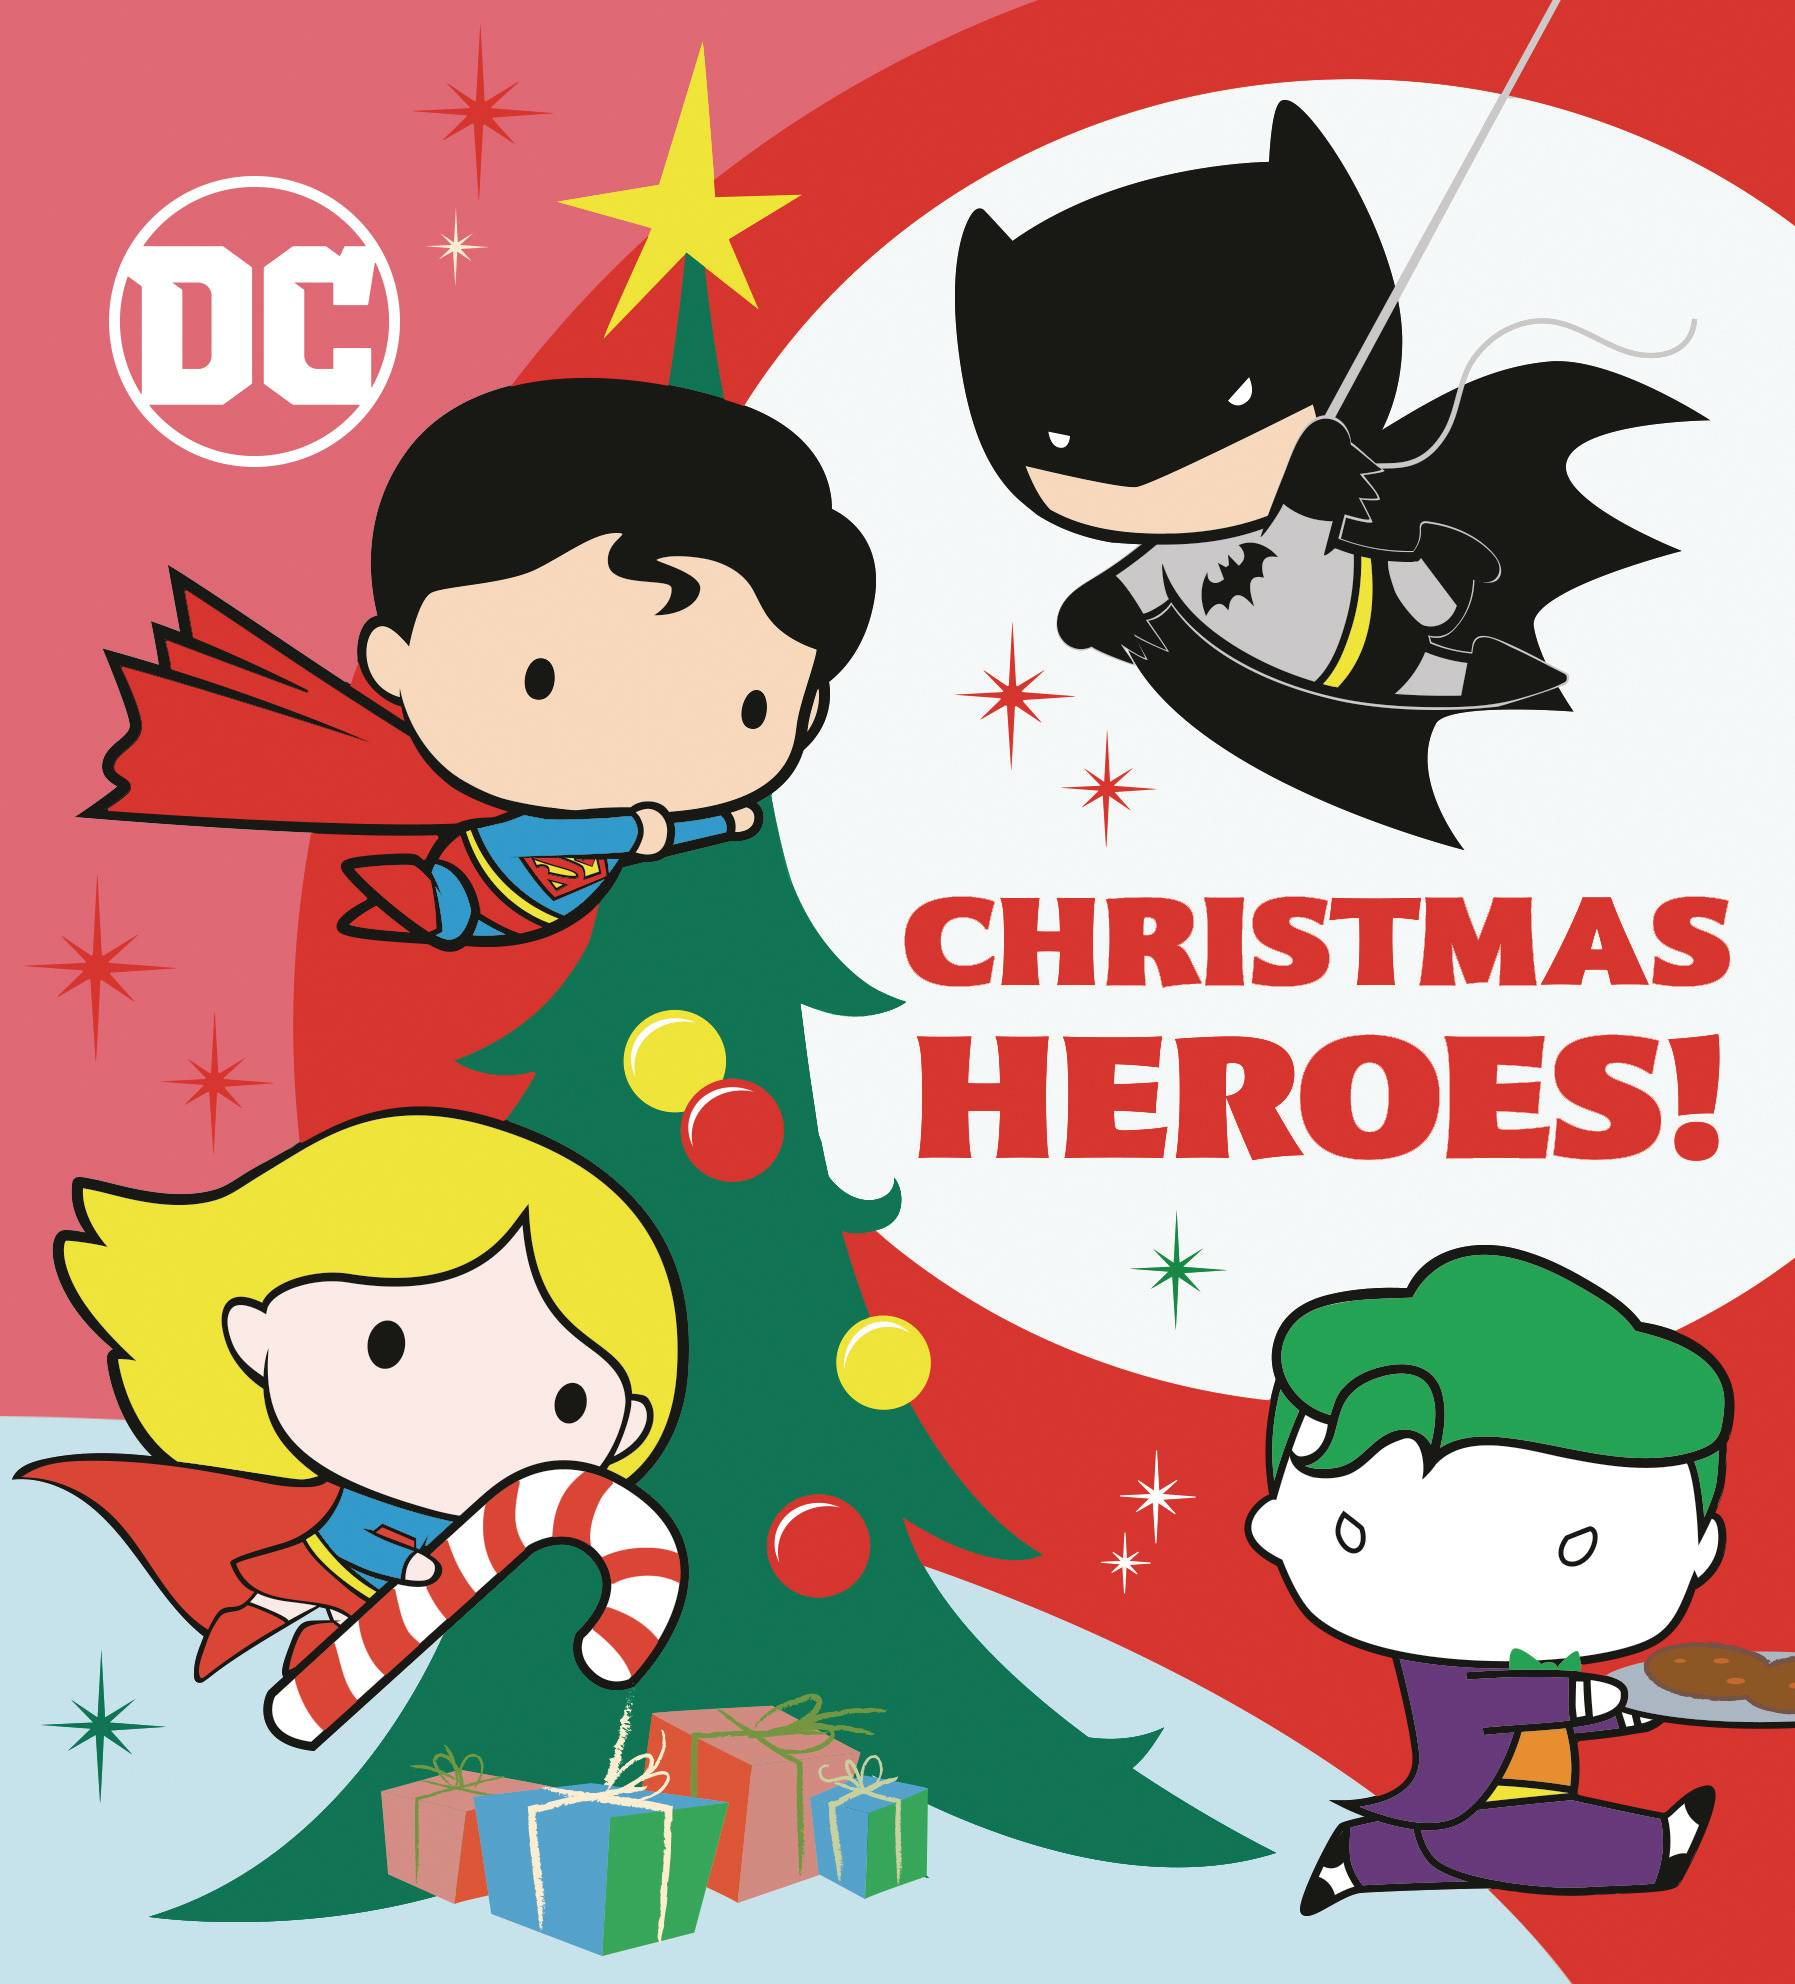 DC JUSTICE LEAGUE CHRISTMAS HEROES BOARD BOOK